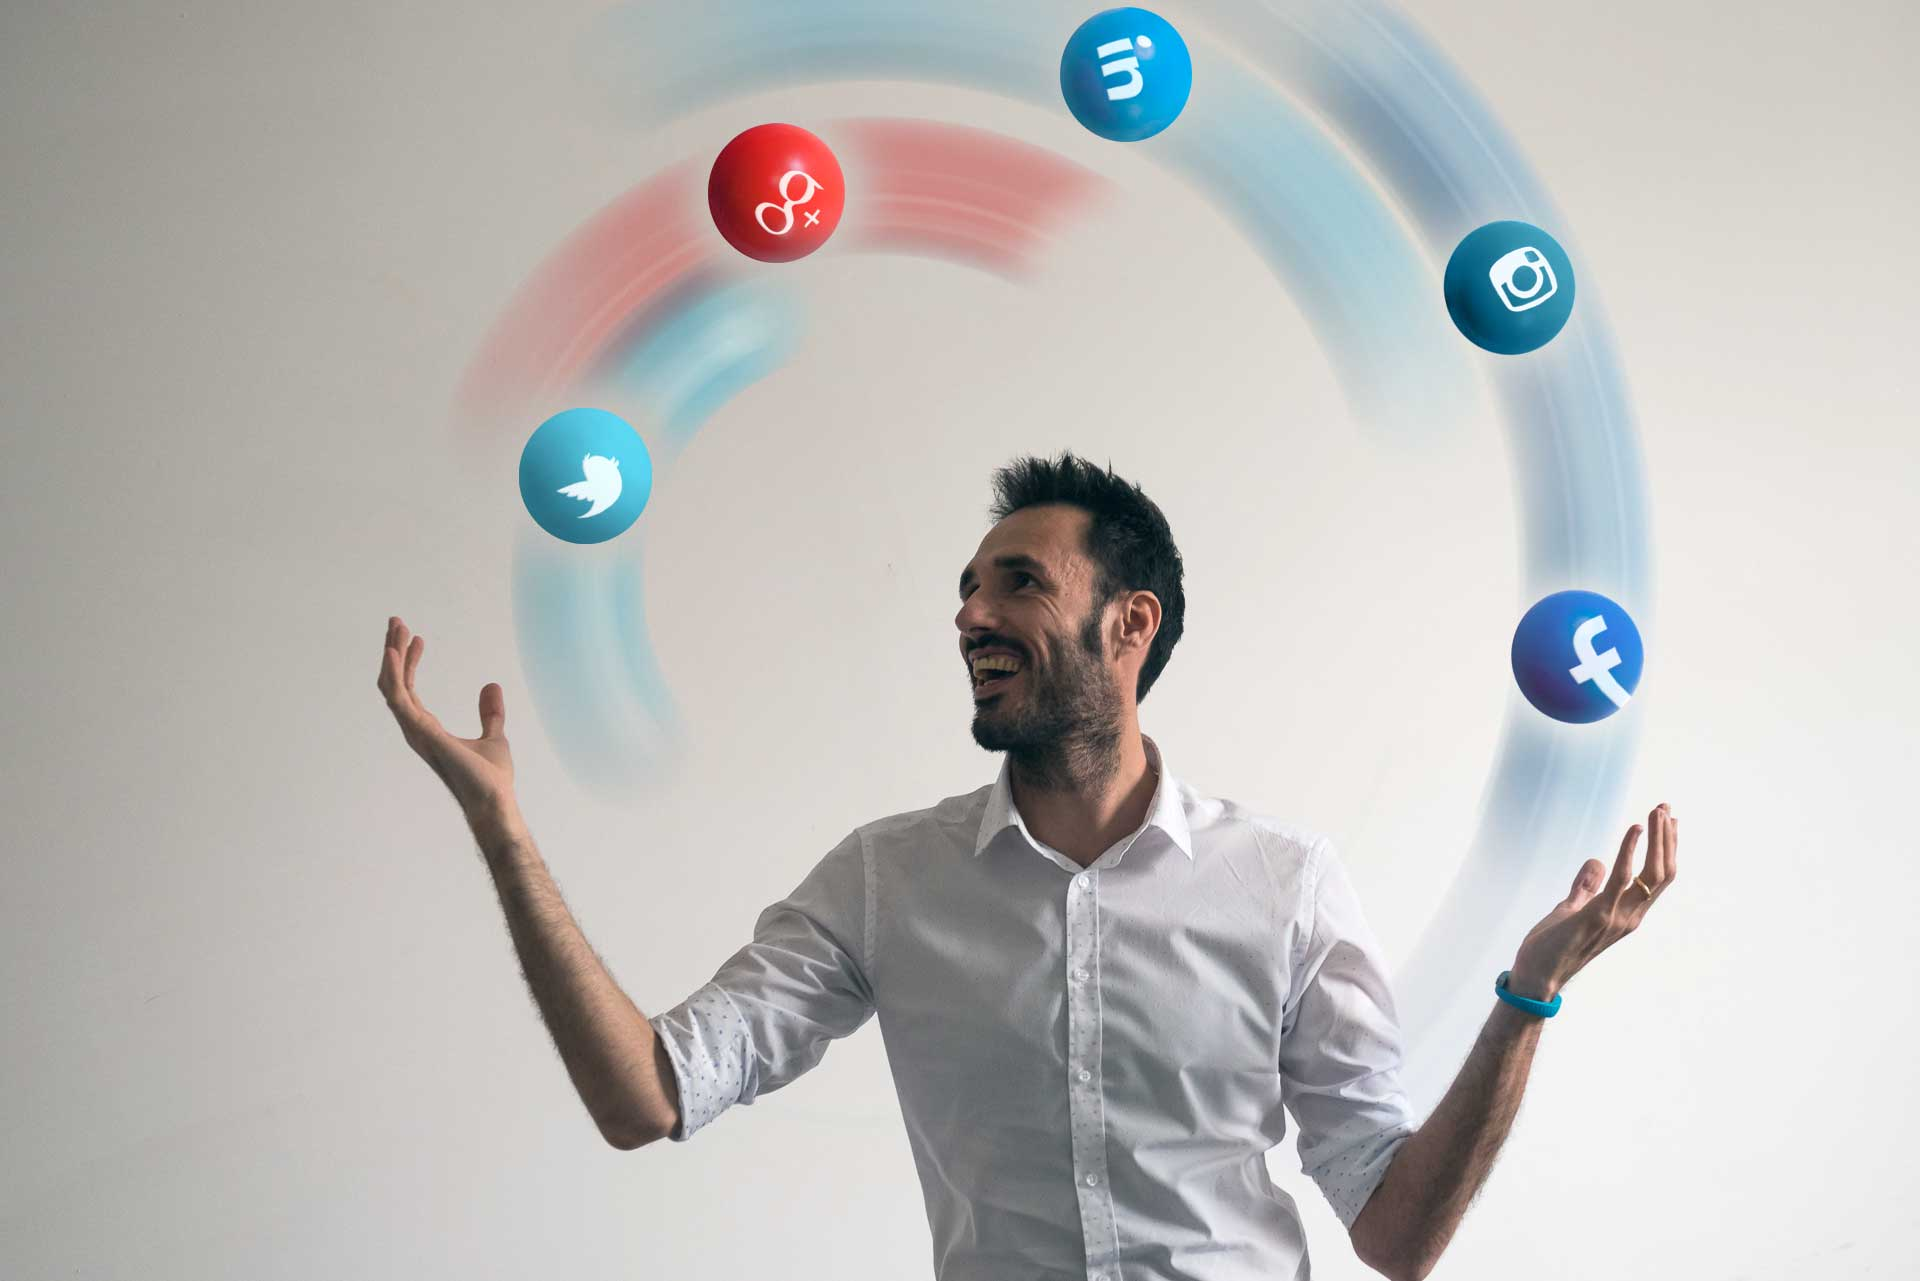 L'influencer marketing raccontato da Matteo Pogliani - Web agency Verona | Taeda Communication